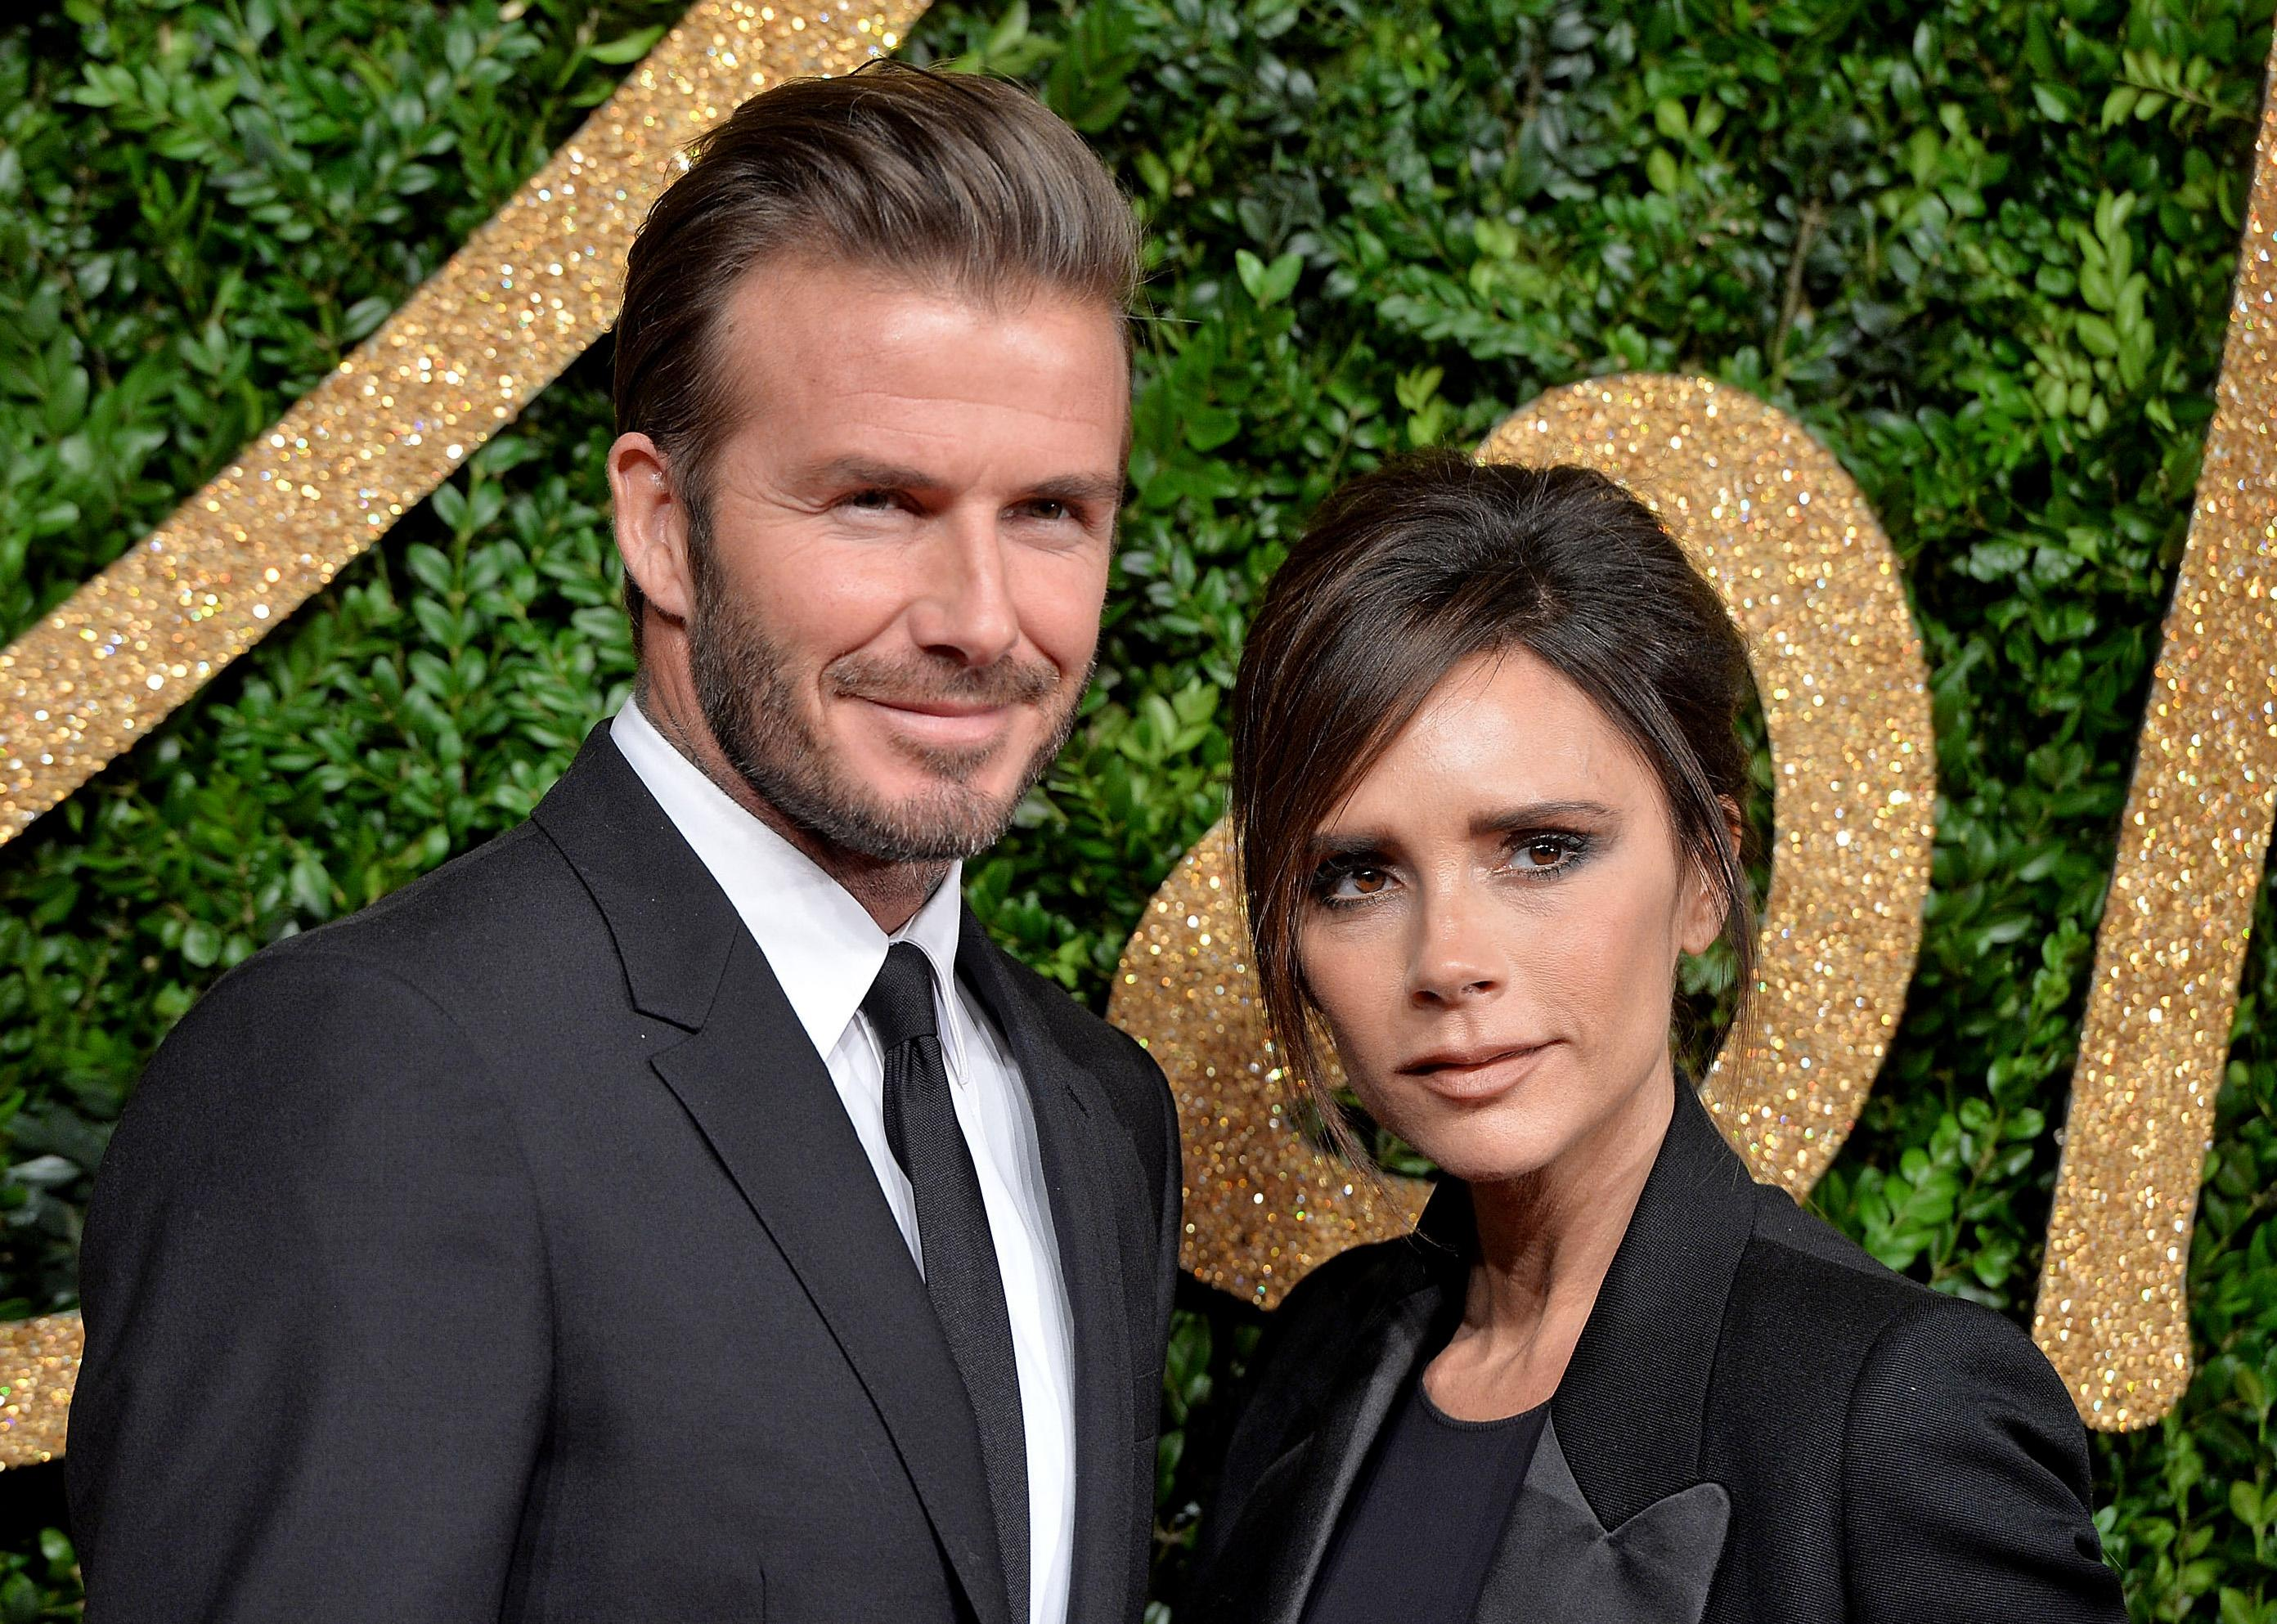 David and Victoria Beckham silence latest divorce rumors with cozy photos